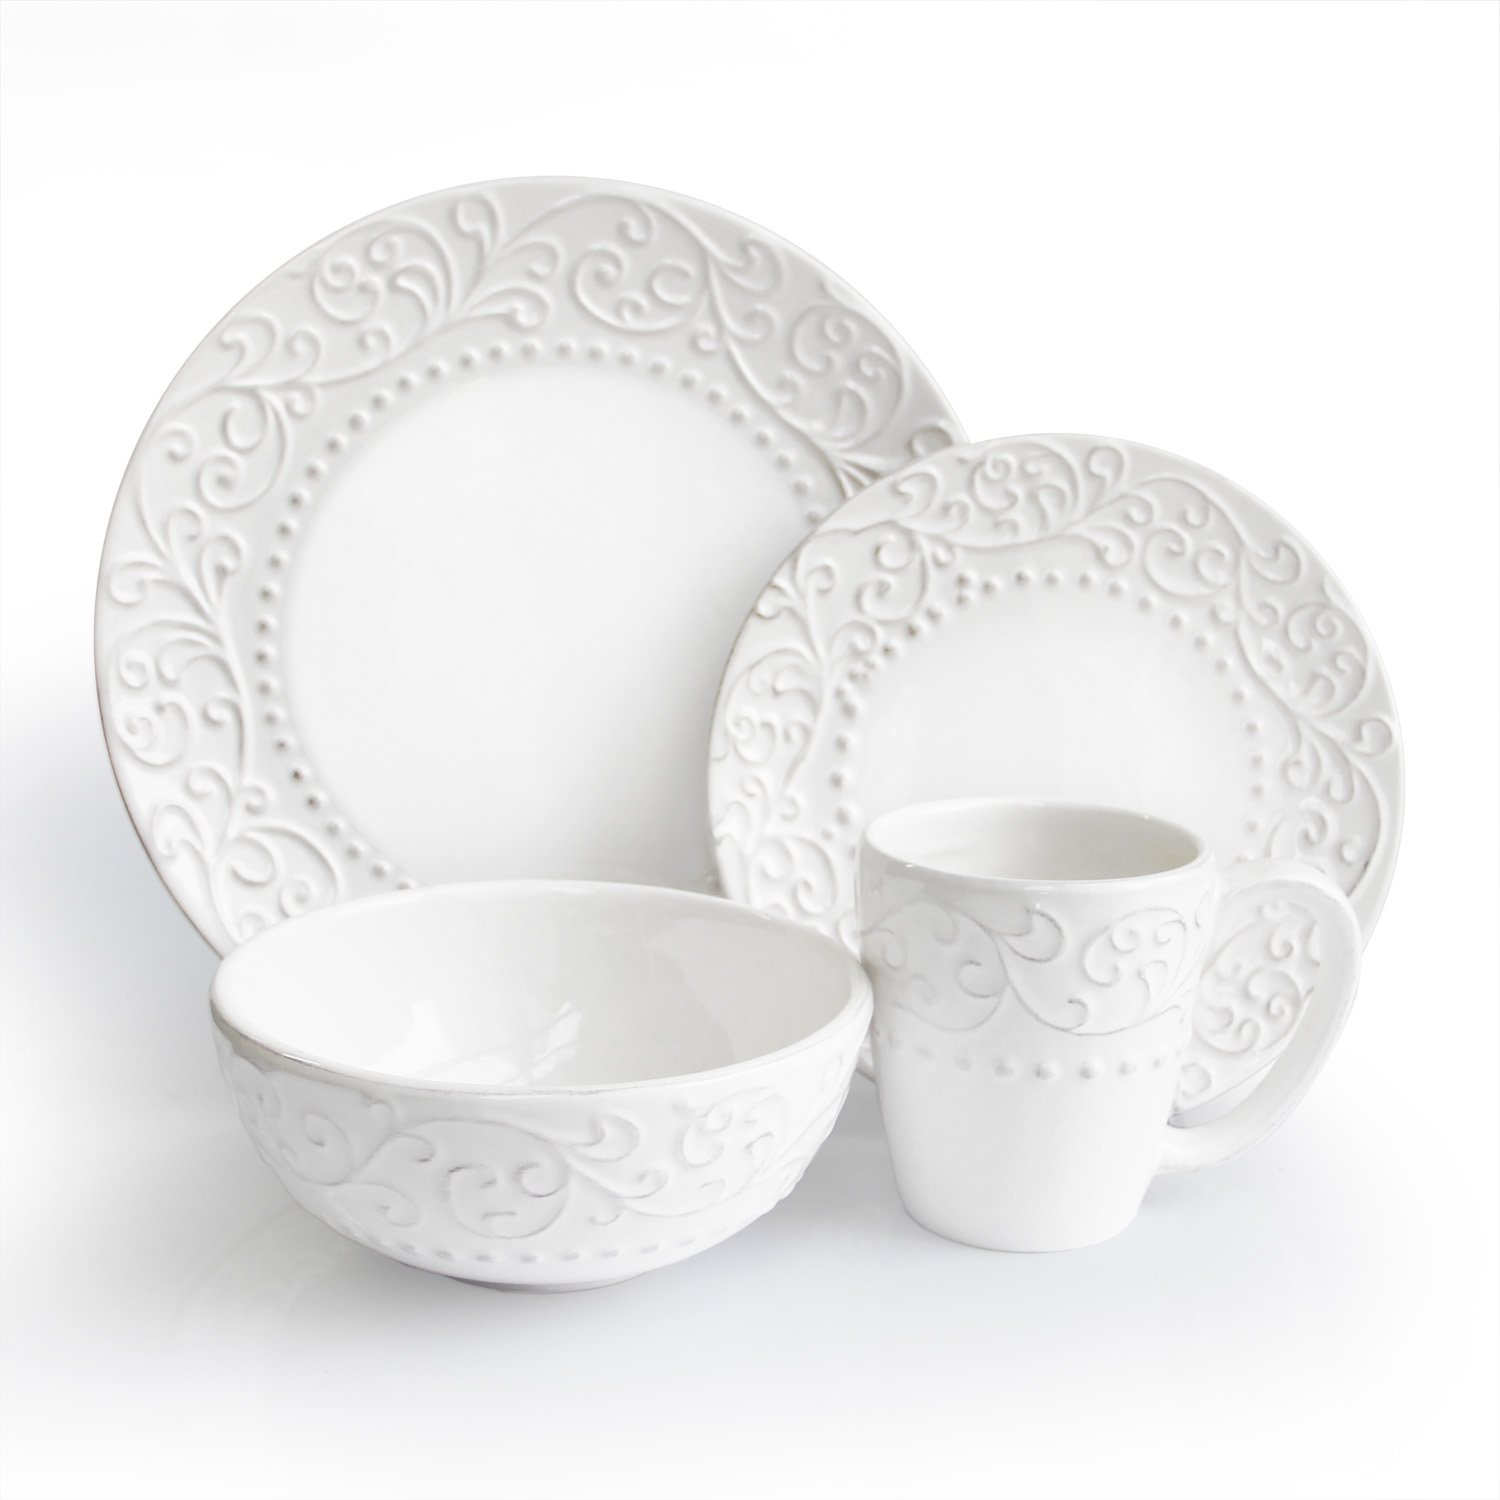 Christmas Tablescape Décor - Bianca white 16-piece dinnerware set, service for 4 by American Atelier